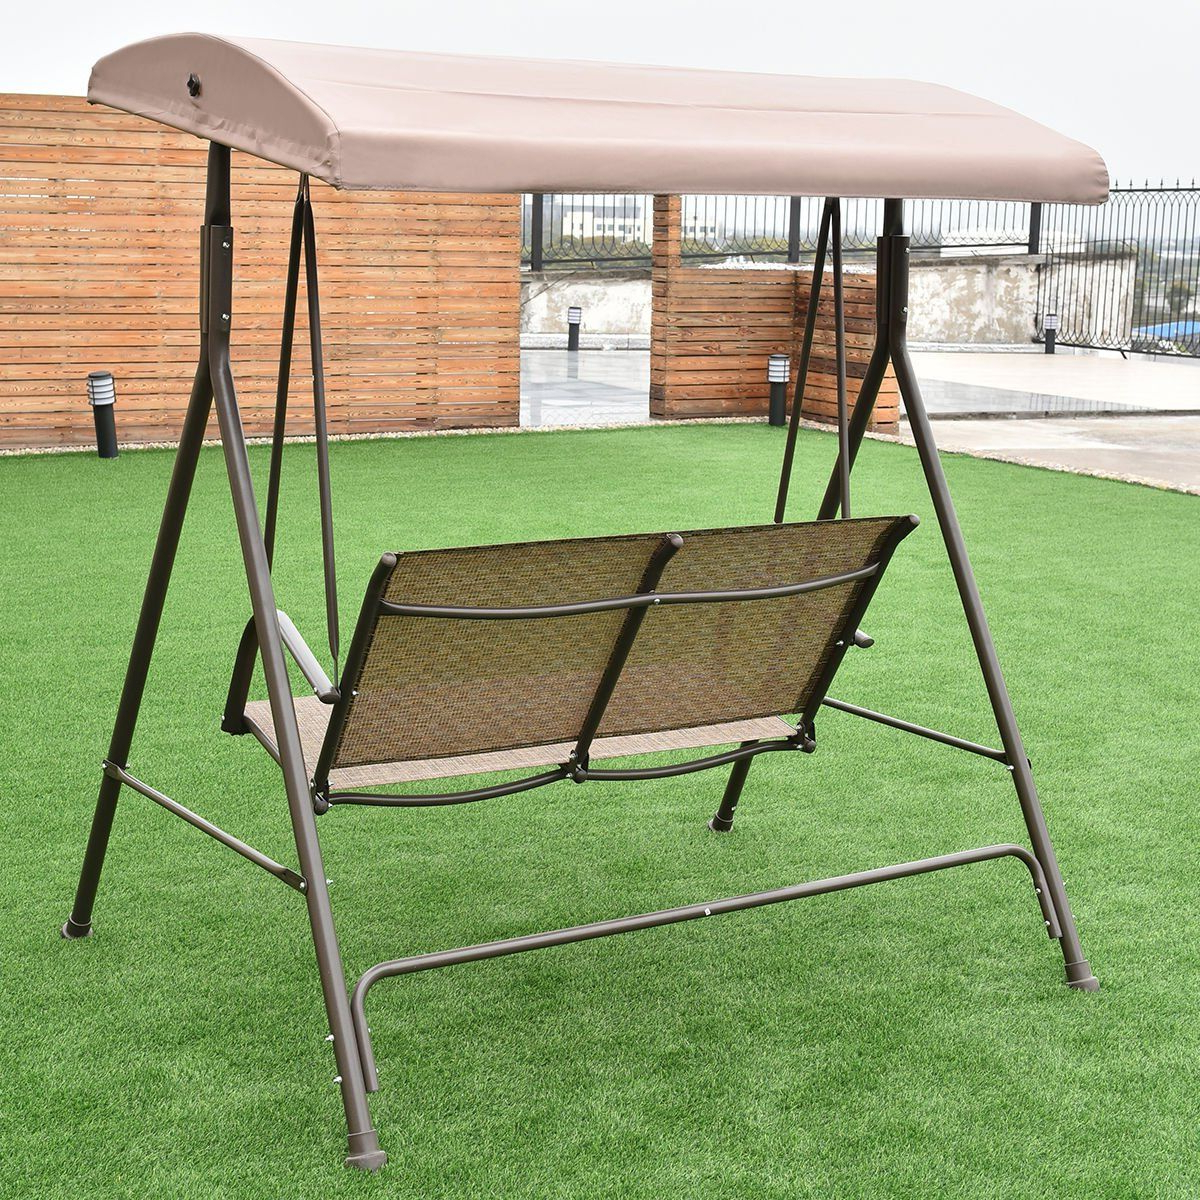 Colibroxoutdoor 2 Person Patio Backyard Porch Swing Hammock With Current 2 Person Adjustable Tilt Canopy Patio Loveseat Porch Swings (View 17 of 30)